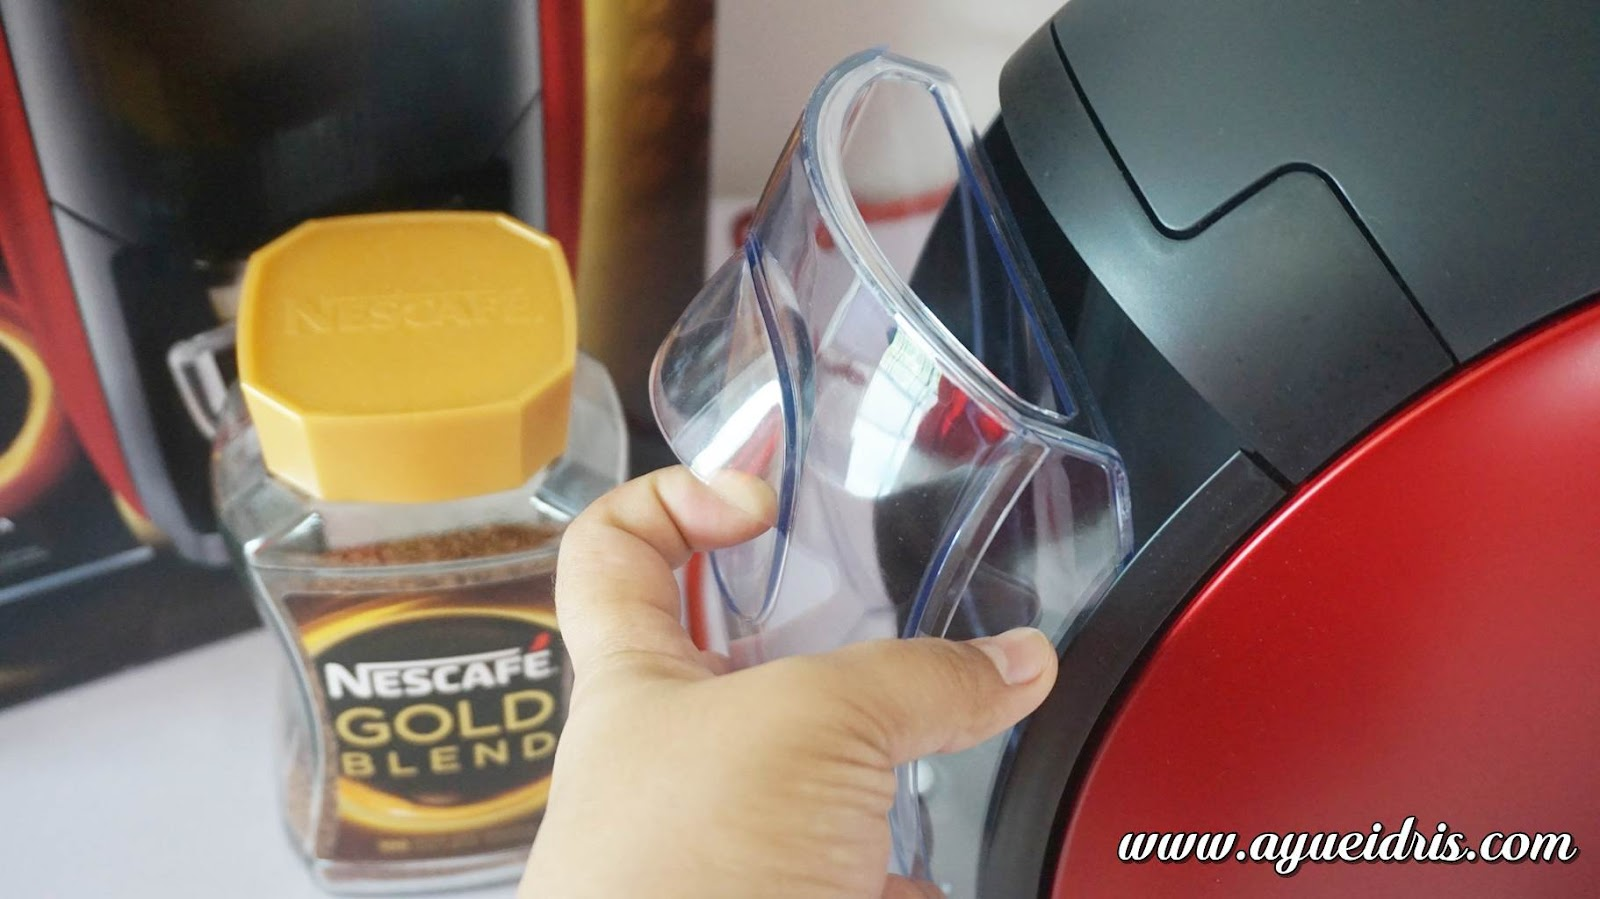 Nescafe Gold Barista Coffee Machine cara guna harga (13).JPG